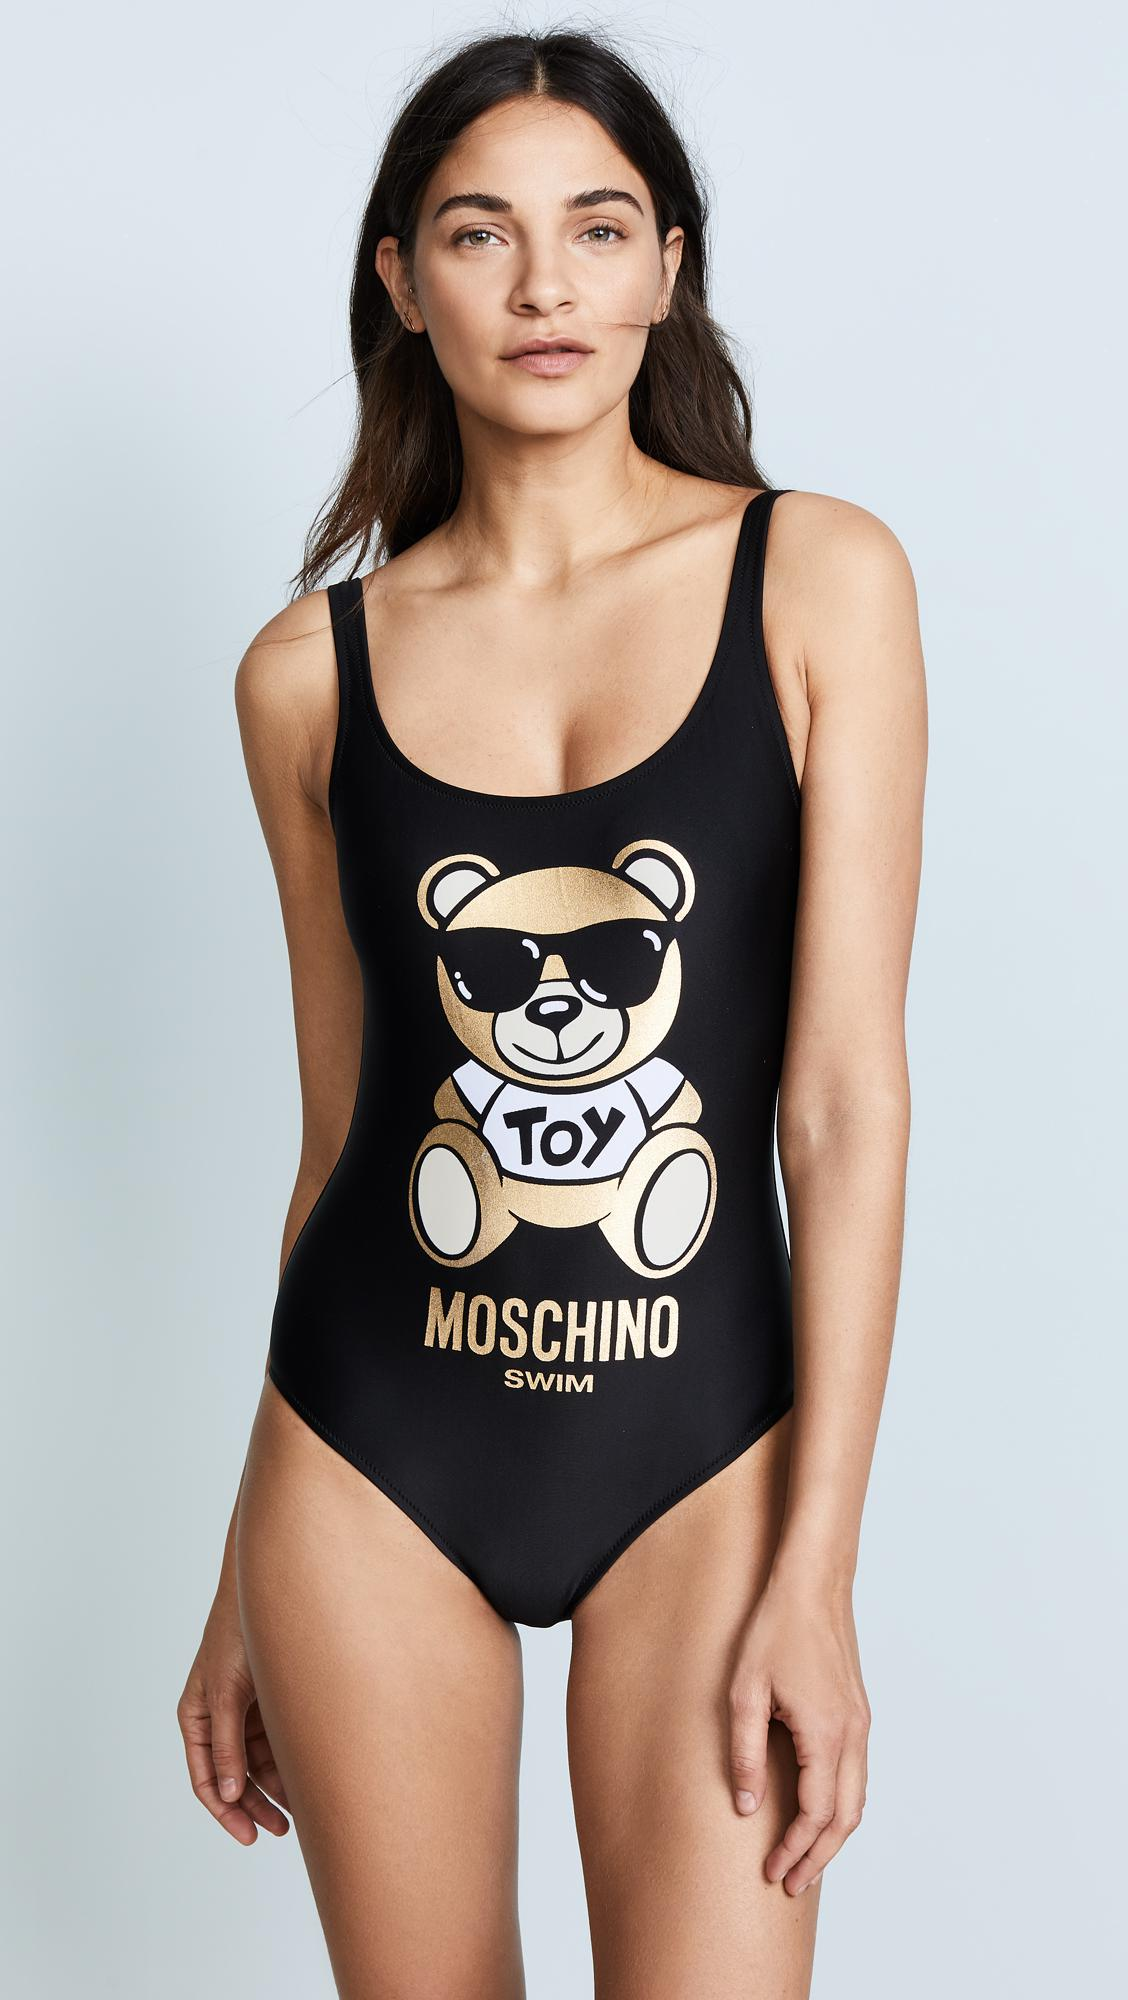 a43692a7d26231 Moschino Toy Bear Graphic Swimsuit in Black - Lyst